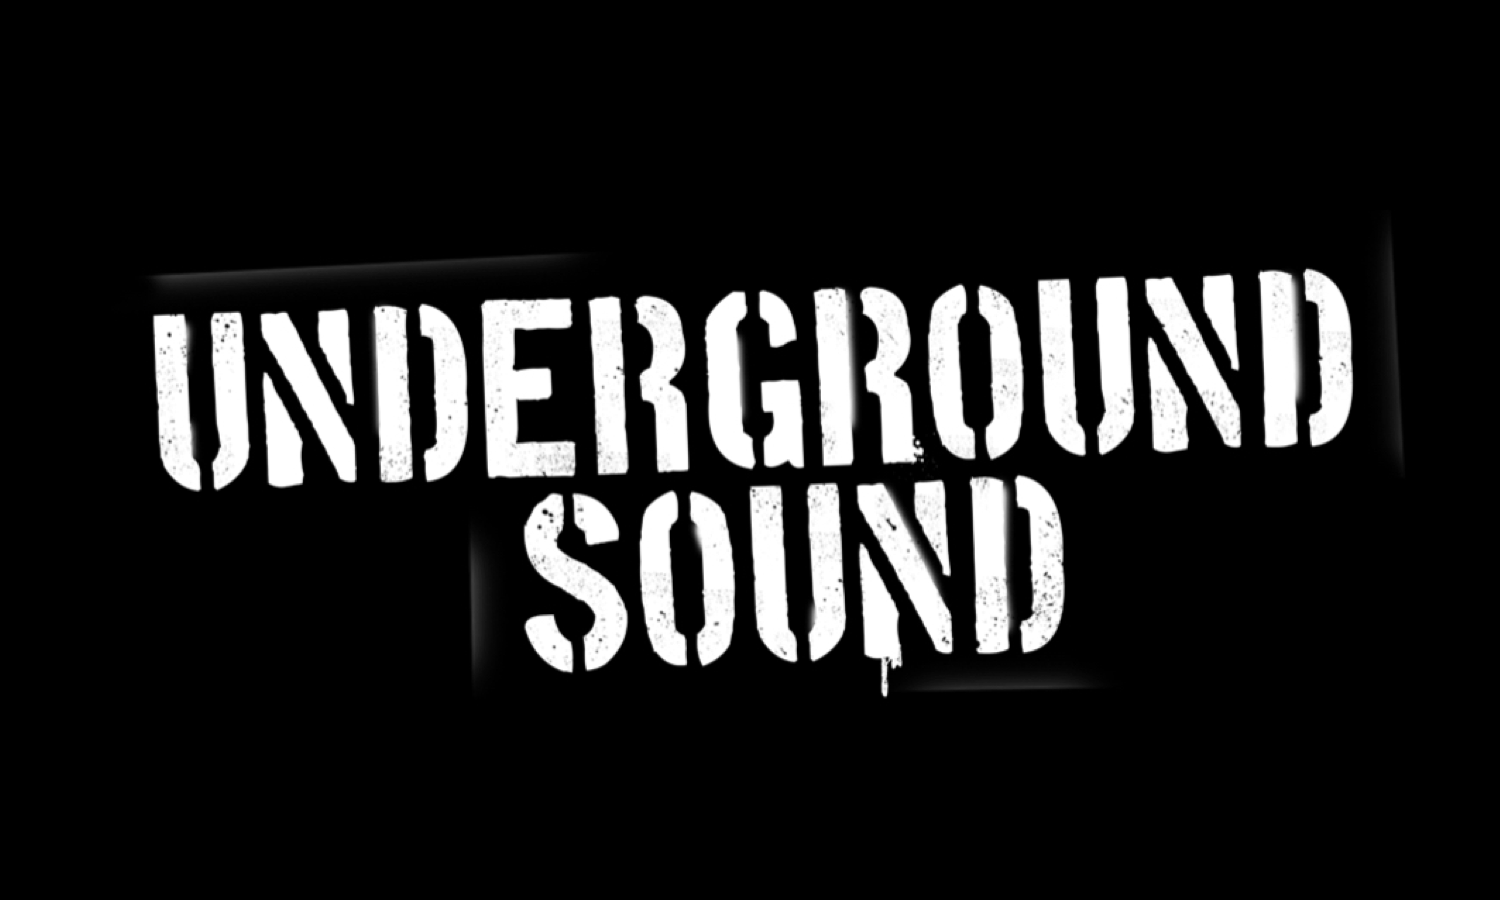 Chevy Underground Sound